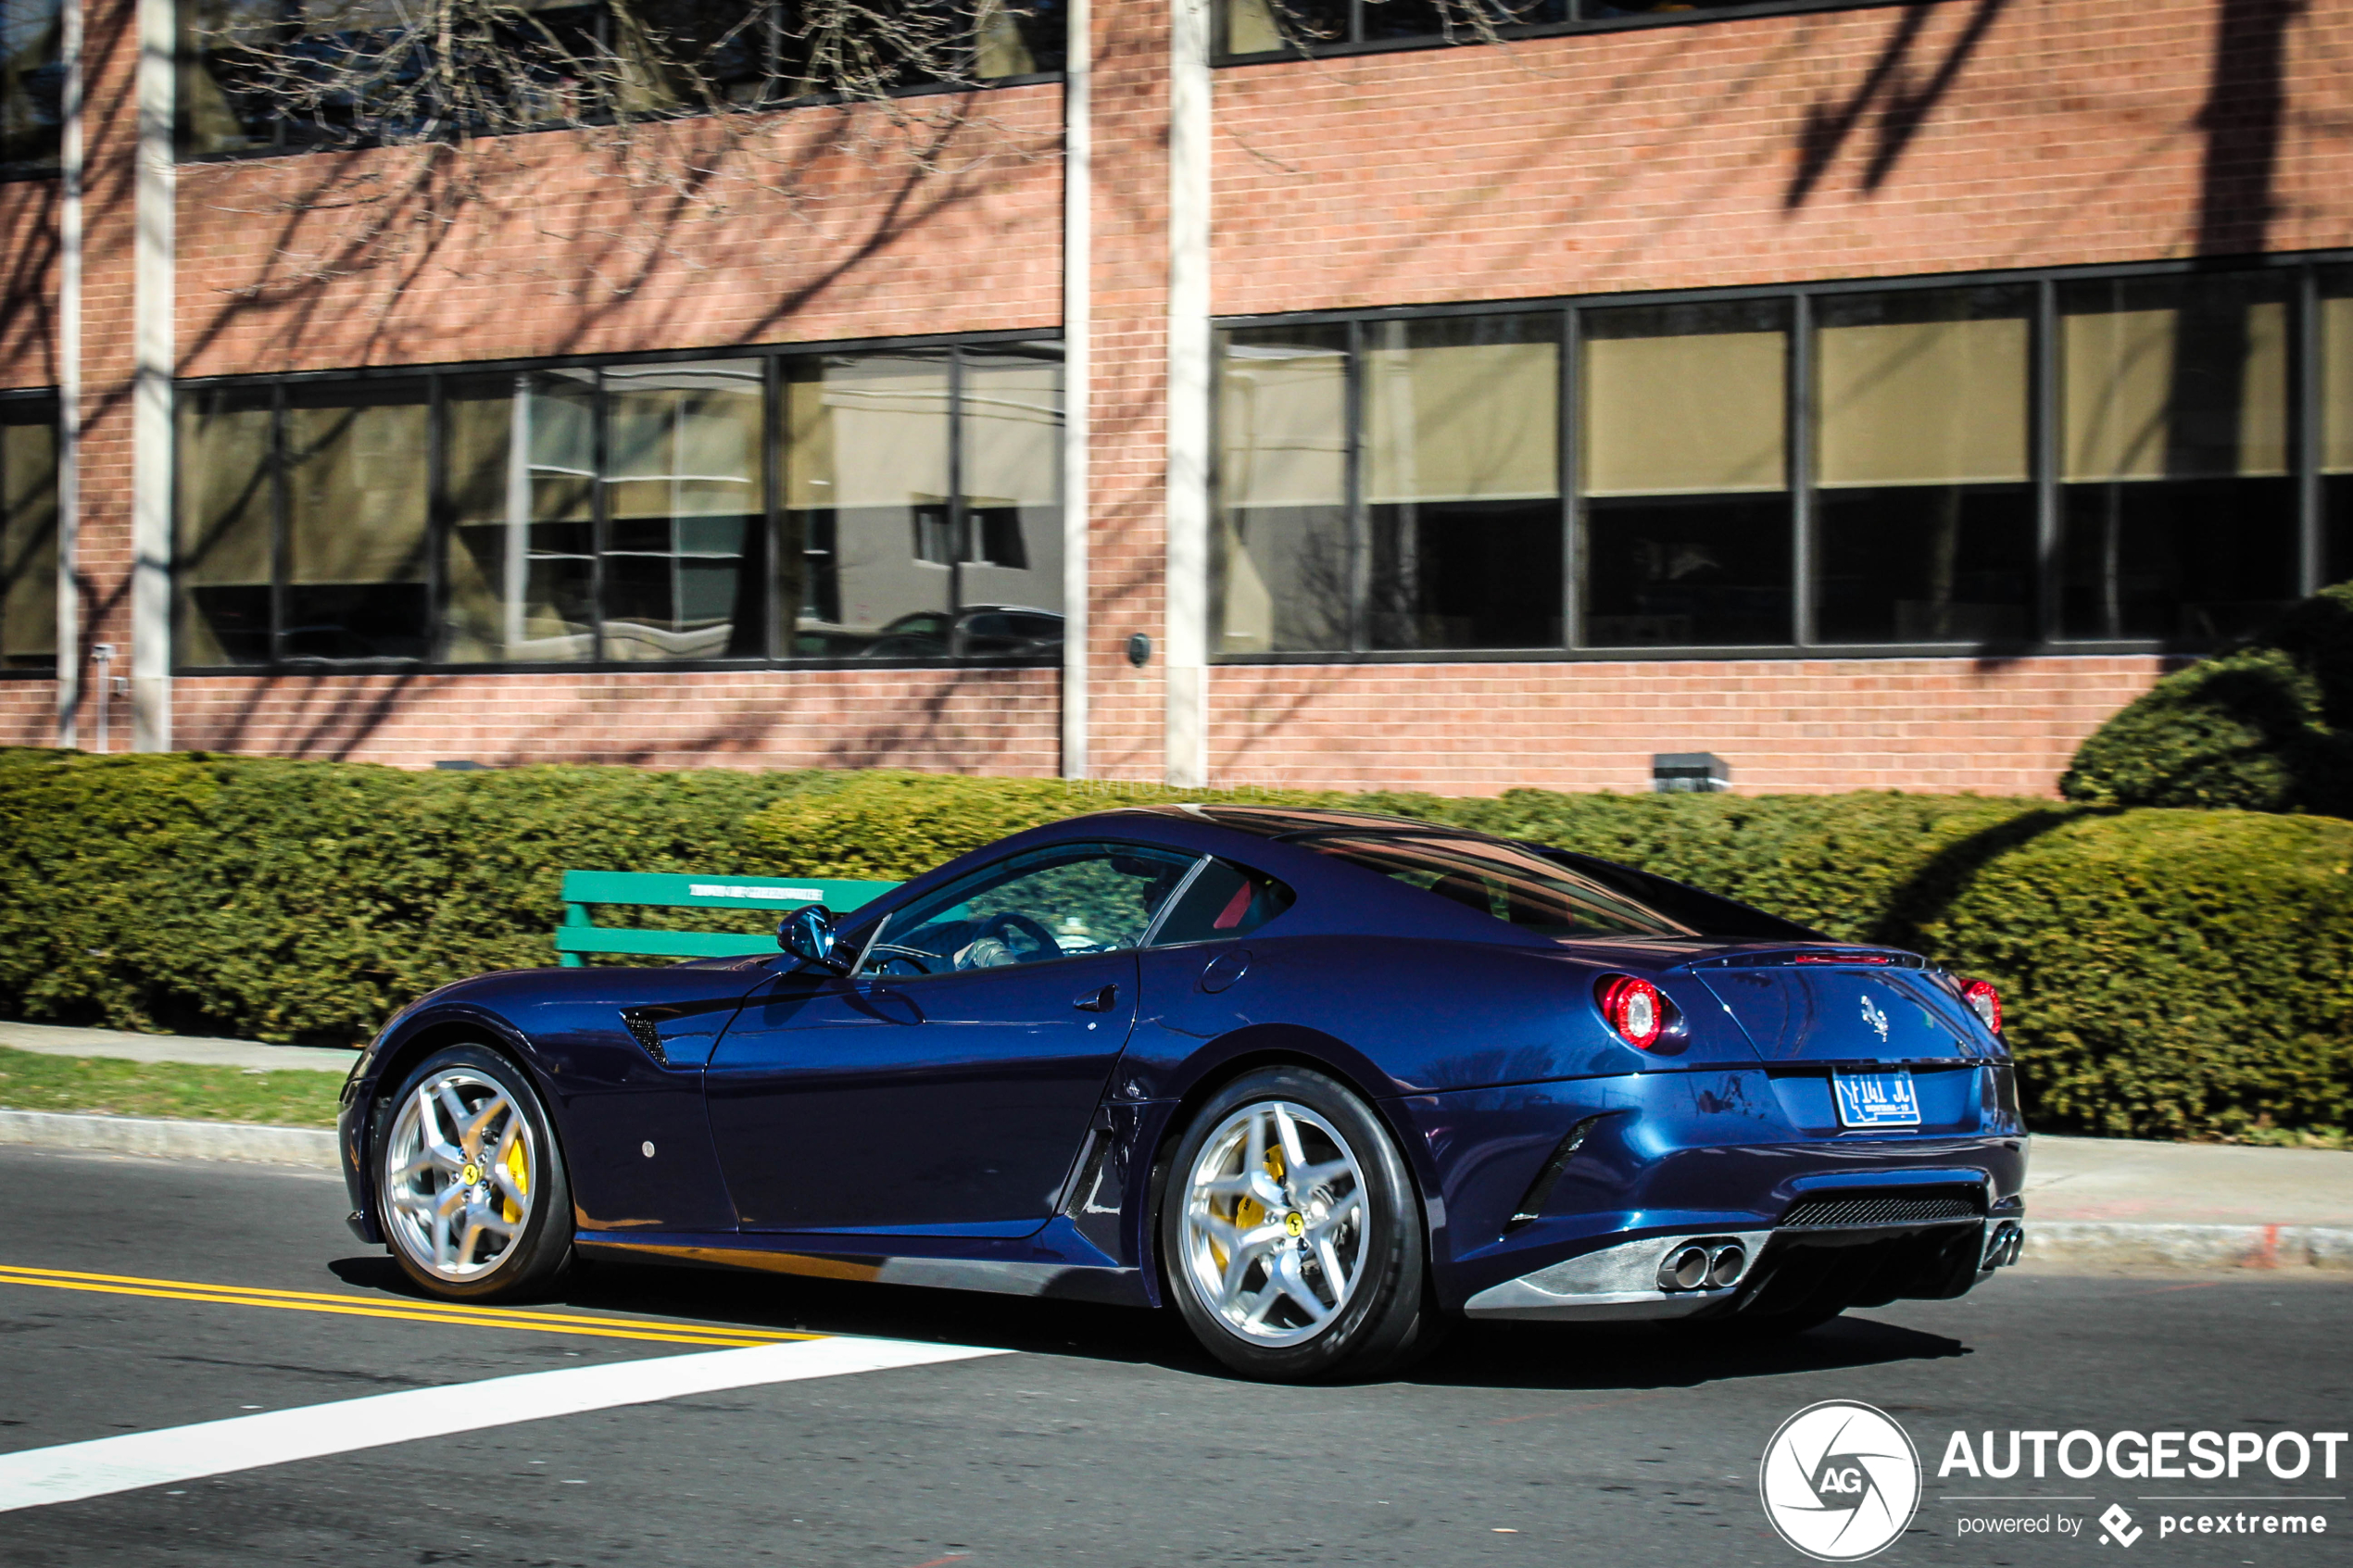 Ferrari 599 GTB Jason Castriota Designs Speciale is really special